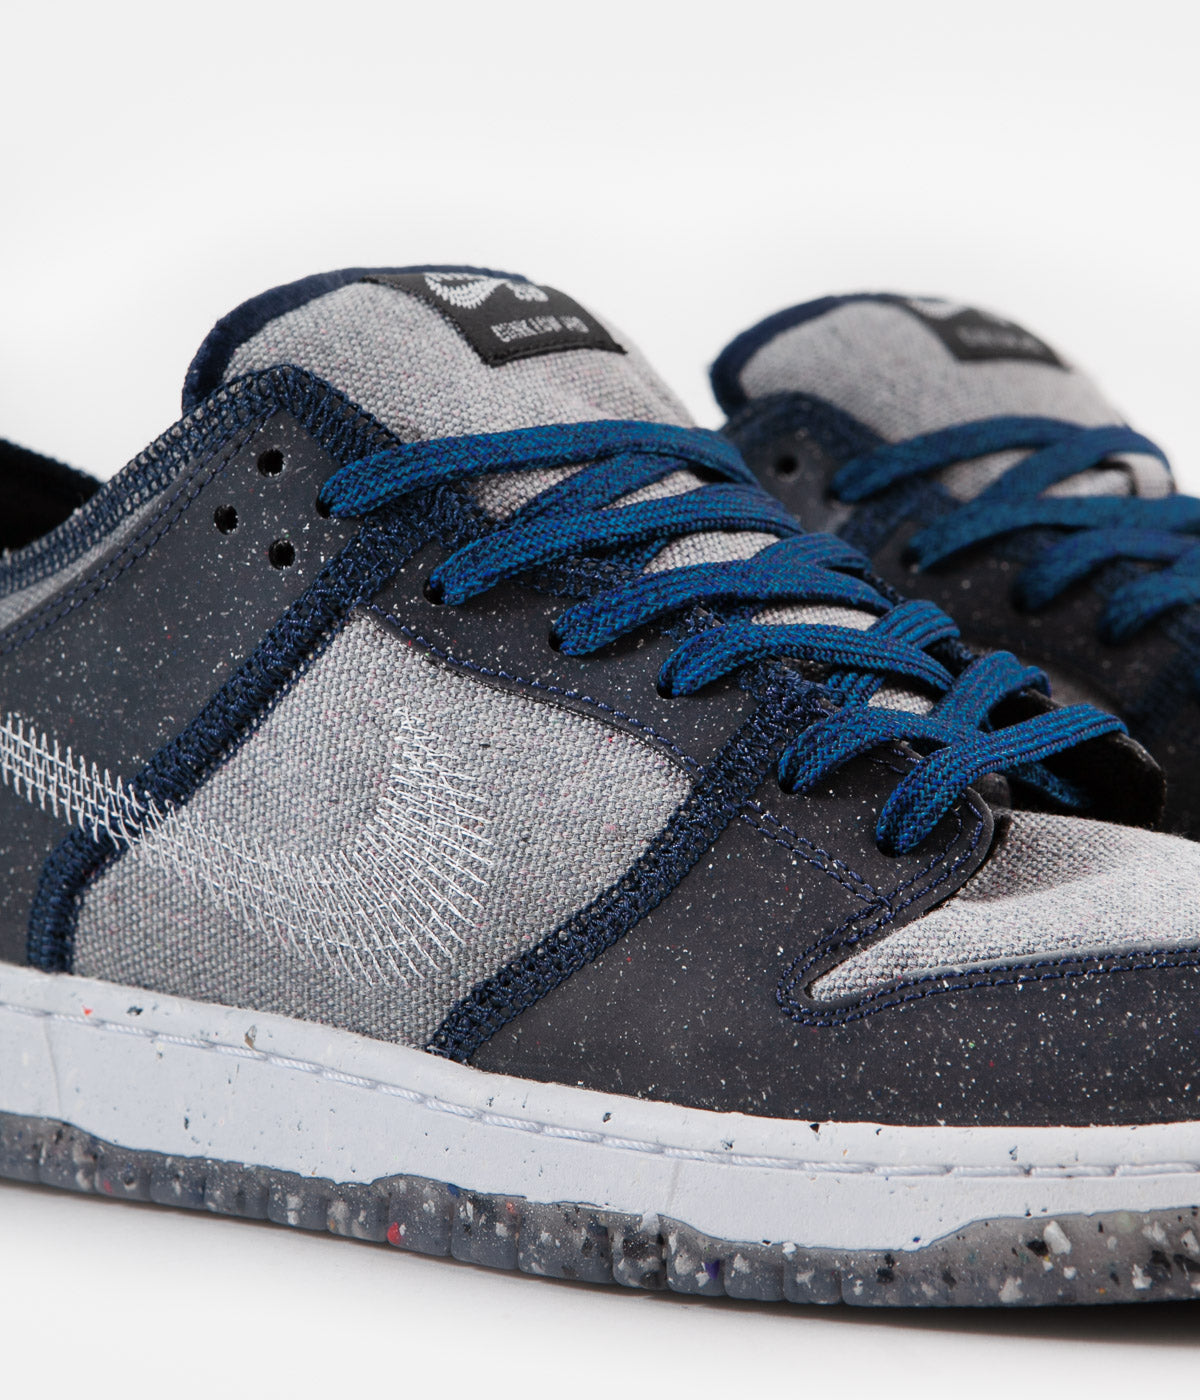 Nike SB Dunk Low Pro E Shoes - Dark Grey / White - Dark Grey - Electric Green